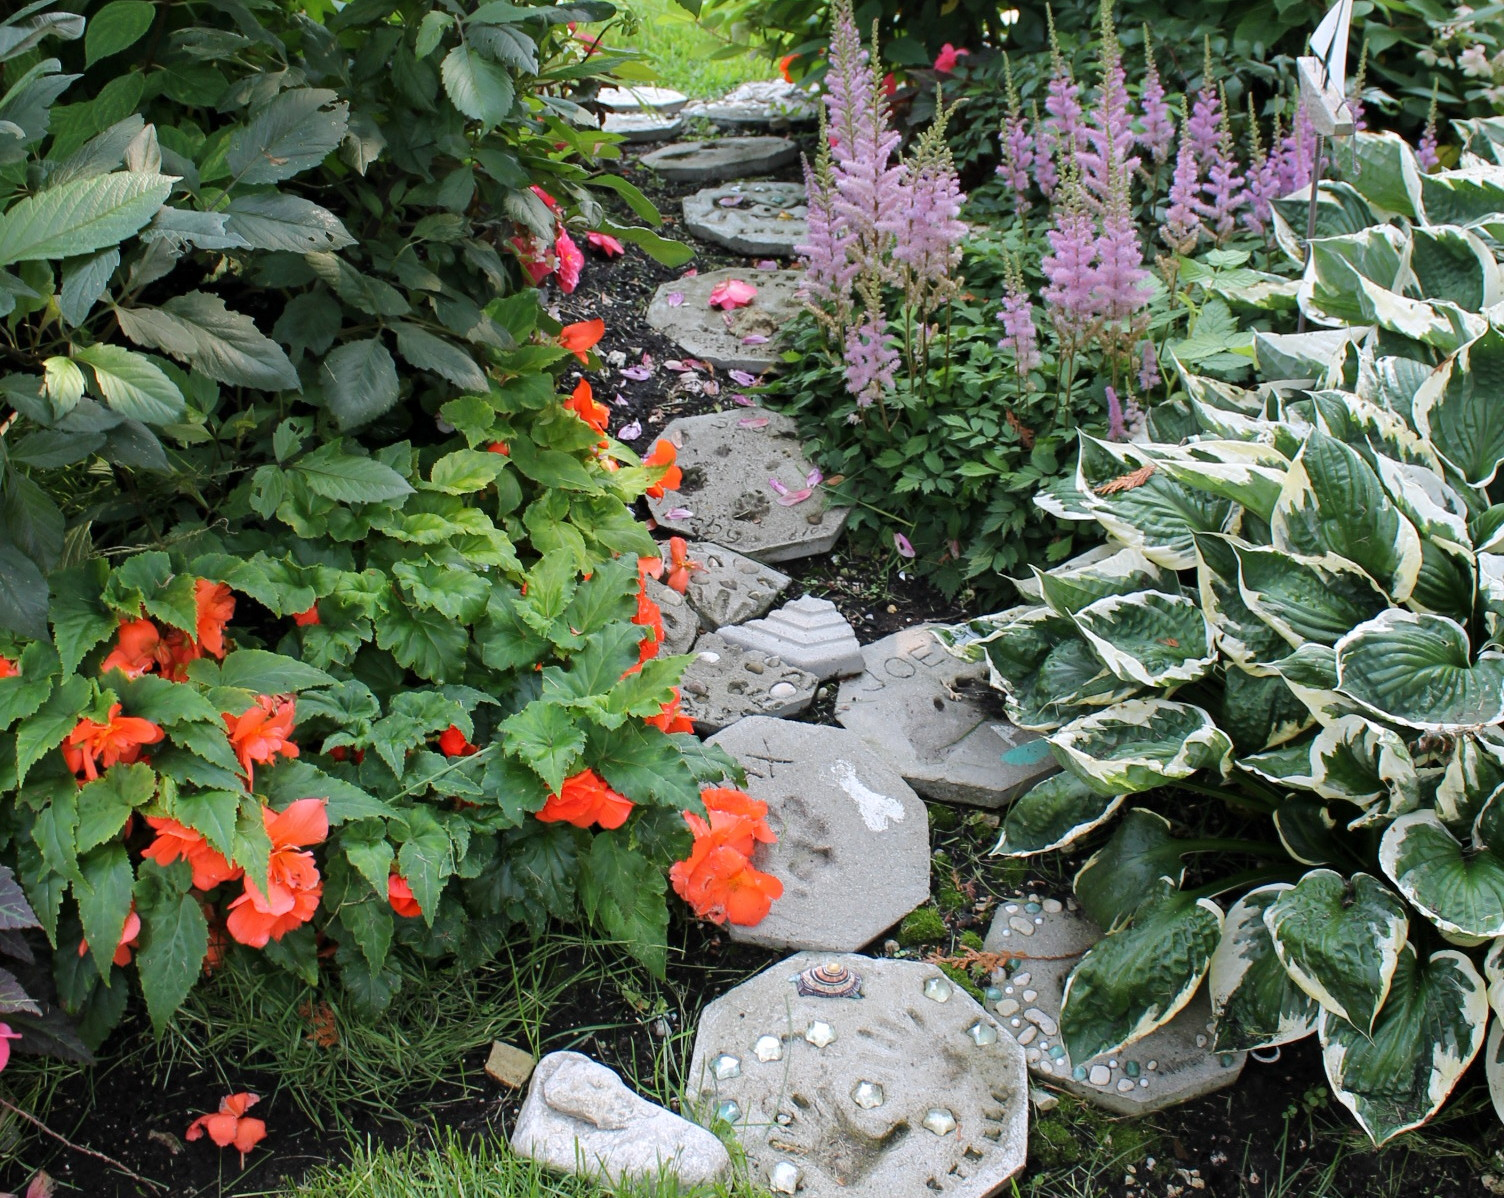 A fairy garden path within that swath of flowers. The owners' grandchildren love this.